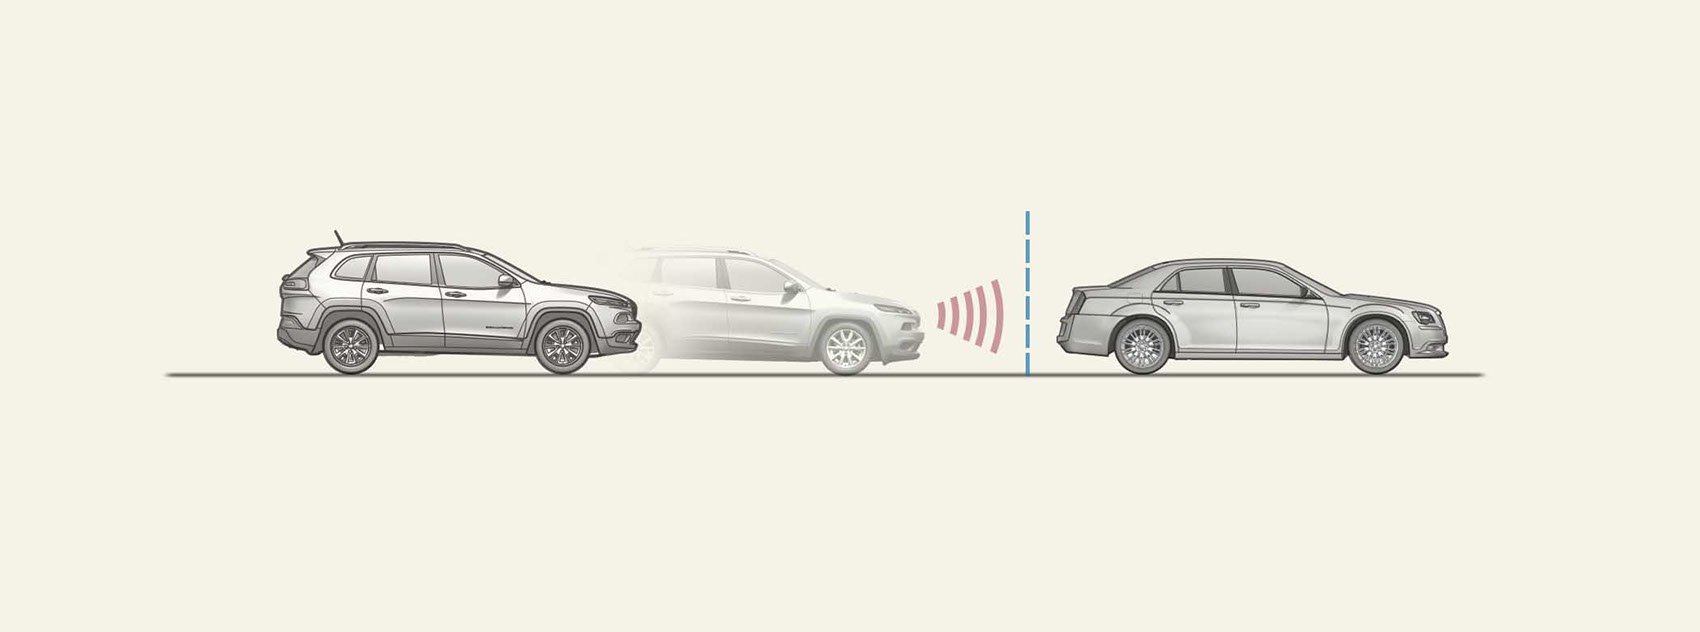 illustration-Technical_Jeep Adaptive cruise control-Tony Randazzo